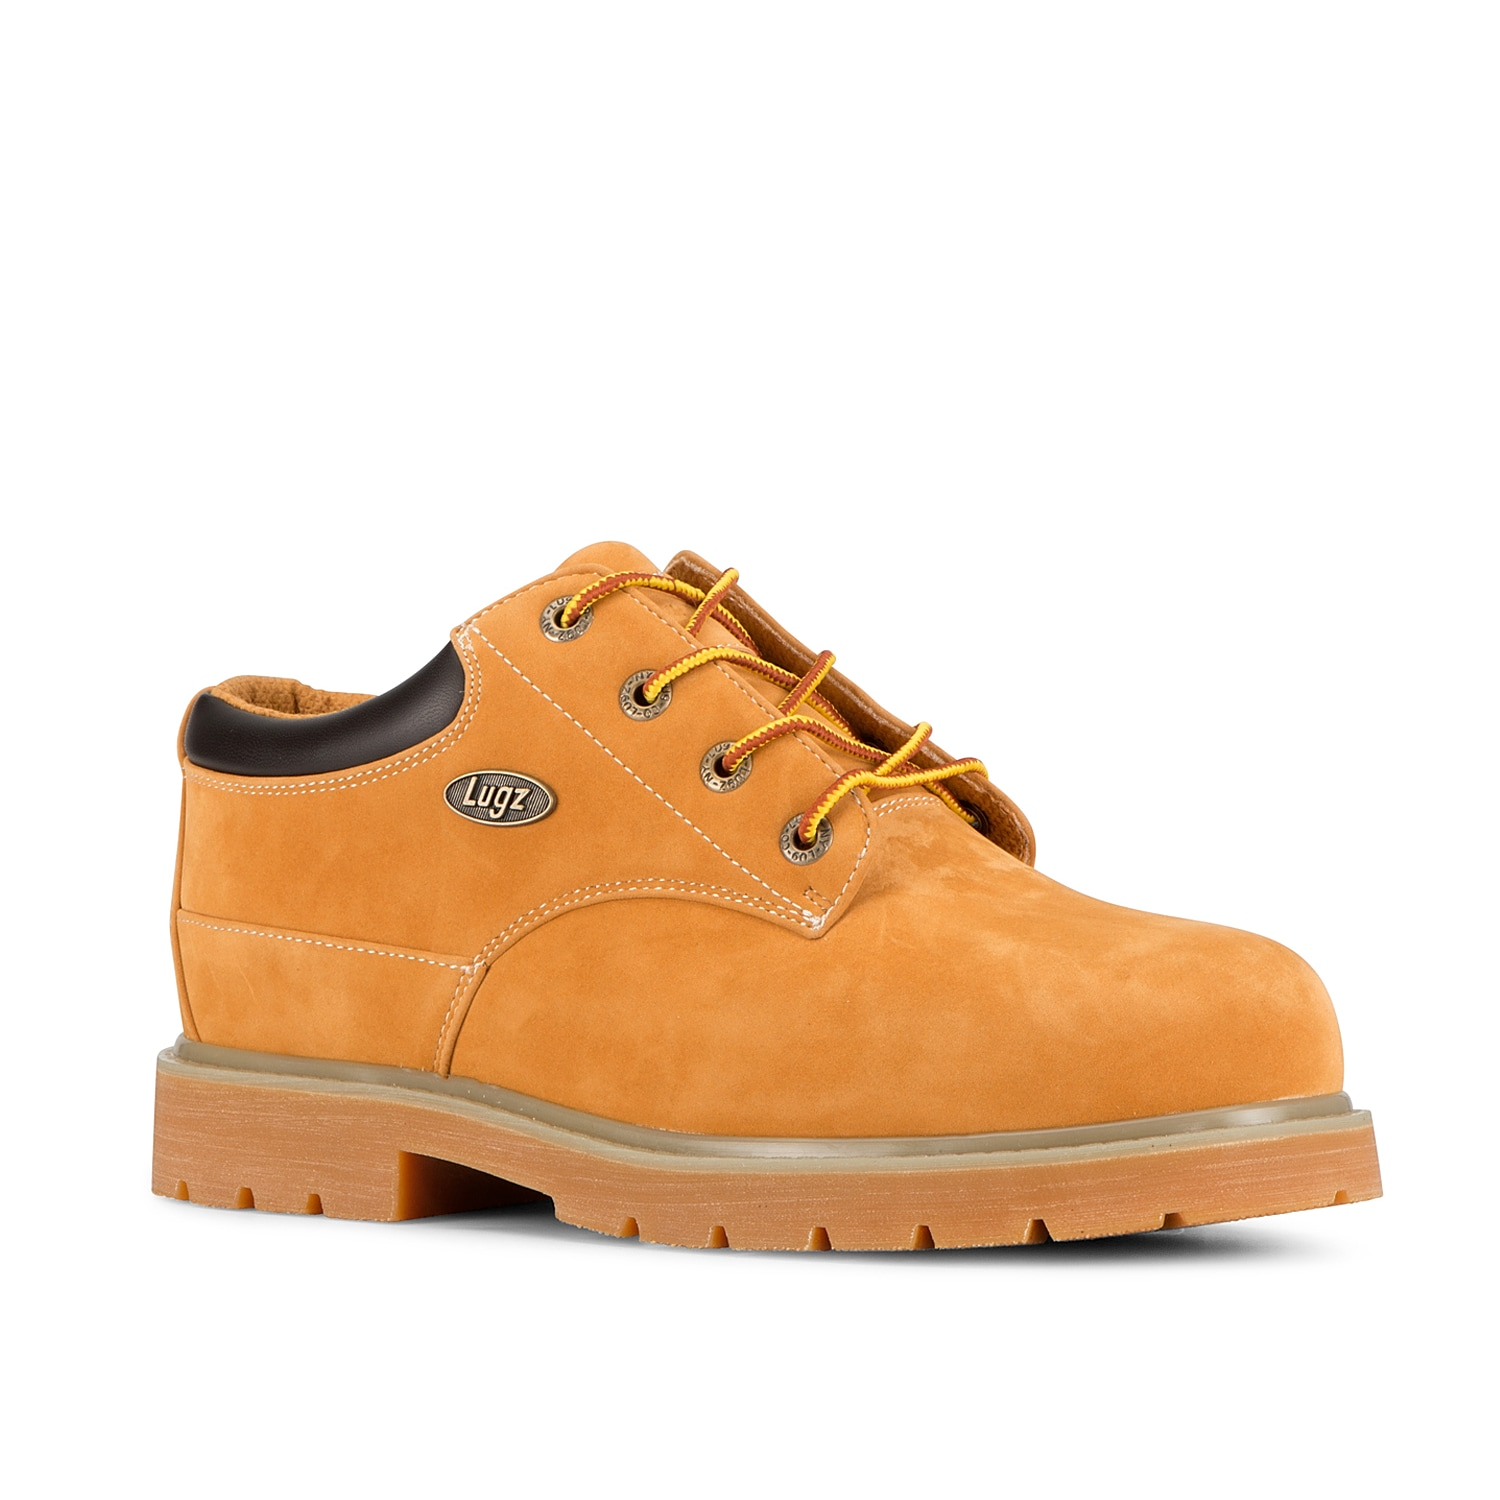 With rugged appeal and classic styling, the Drifter Lo work boot will keep you comfy and safe while you\\\'re on your feet, thanks to its round steel toe and slip-resistant sole.